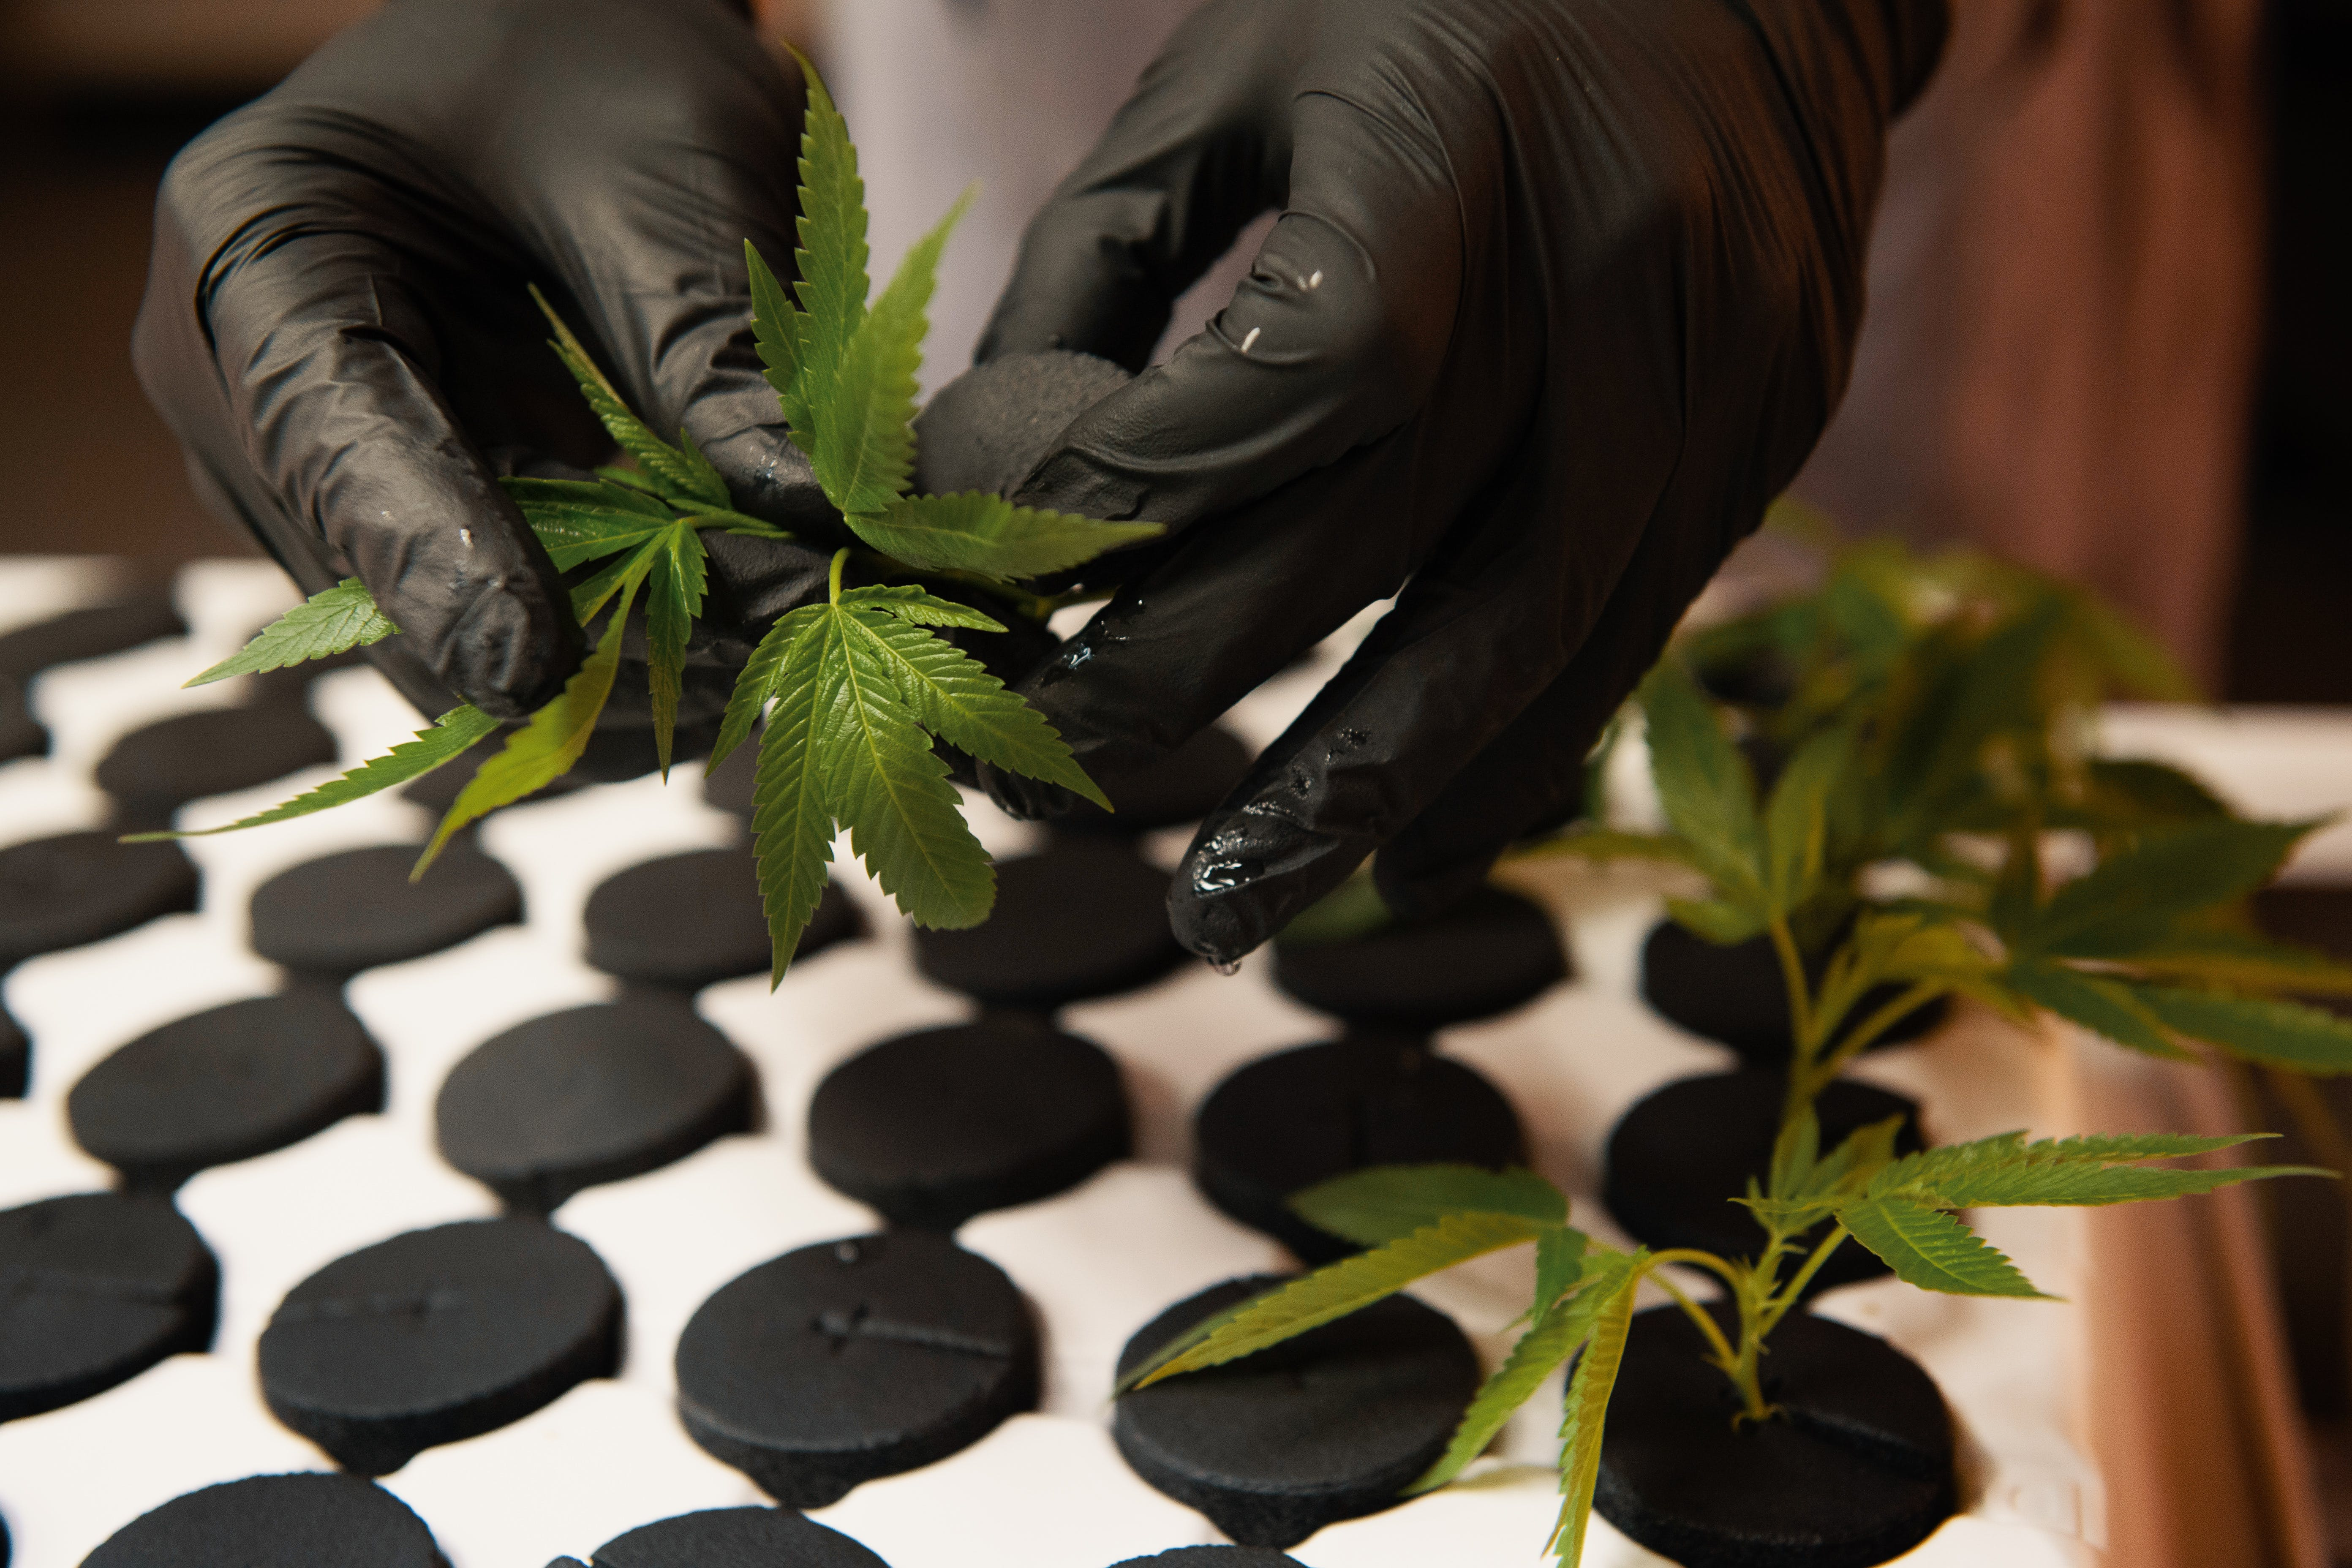 What is Hydroponic Weed The Pros and Cons of Hydroponics vs. Soil What is Hydroponic Weed? The Pros and Cons of Hydroponics vs. Soil